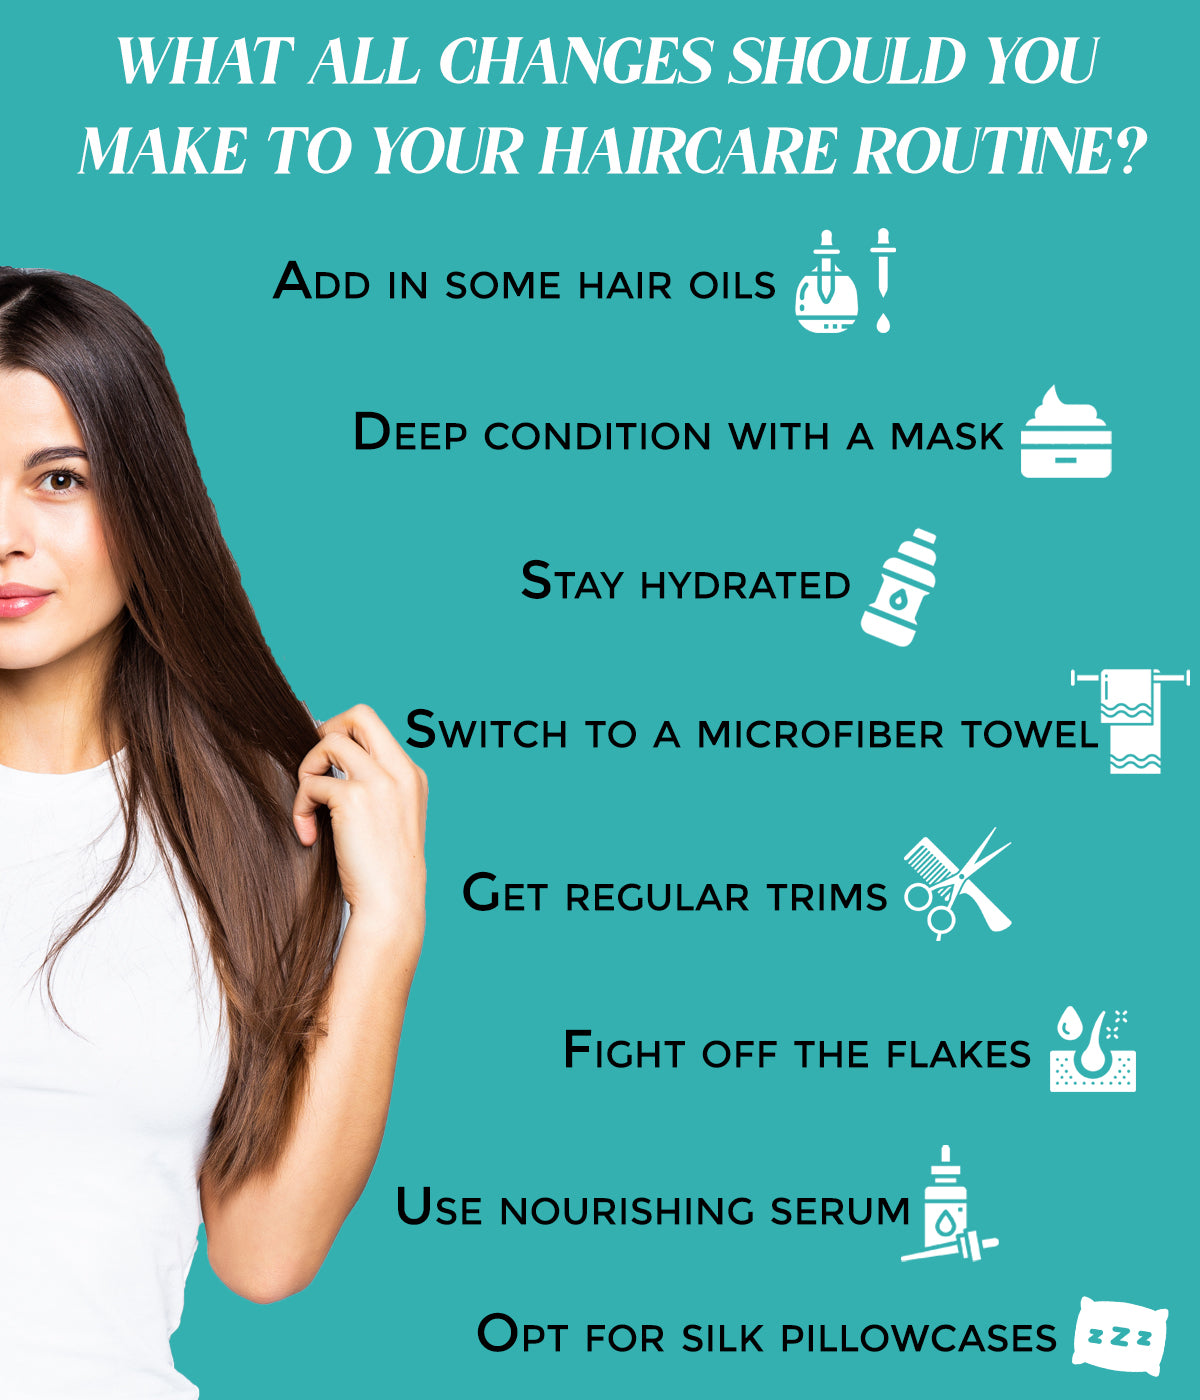 This is an image of changes you need to make in your winter routine